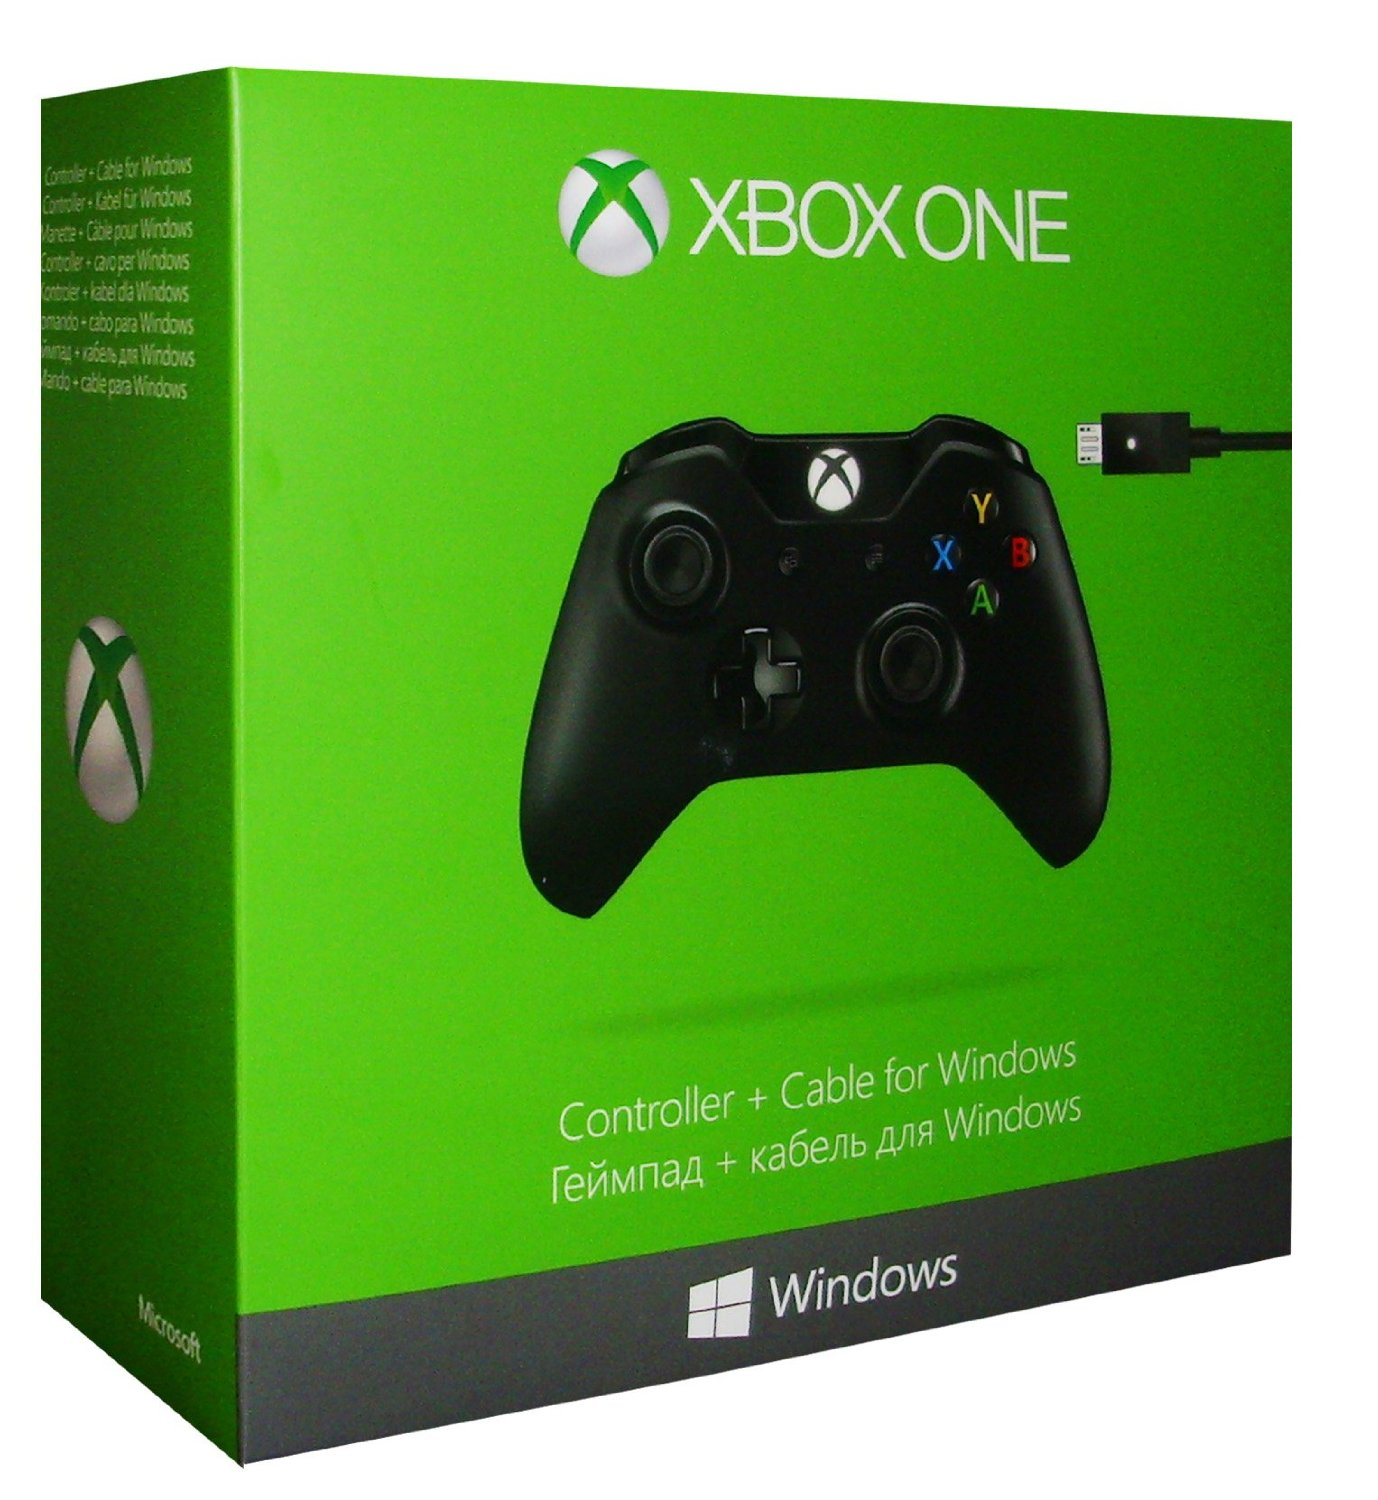 la manette xbox one disponible aussi sur pc page 1 gamalive. Black Bedroom Furniture Sets. Home Design Ideas